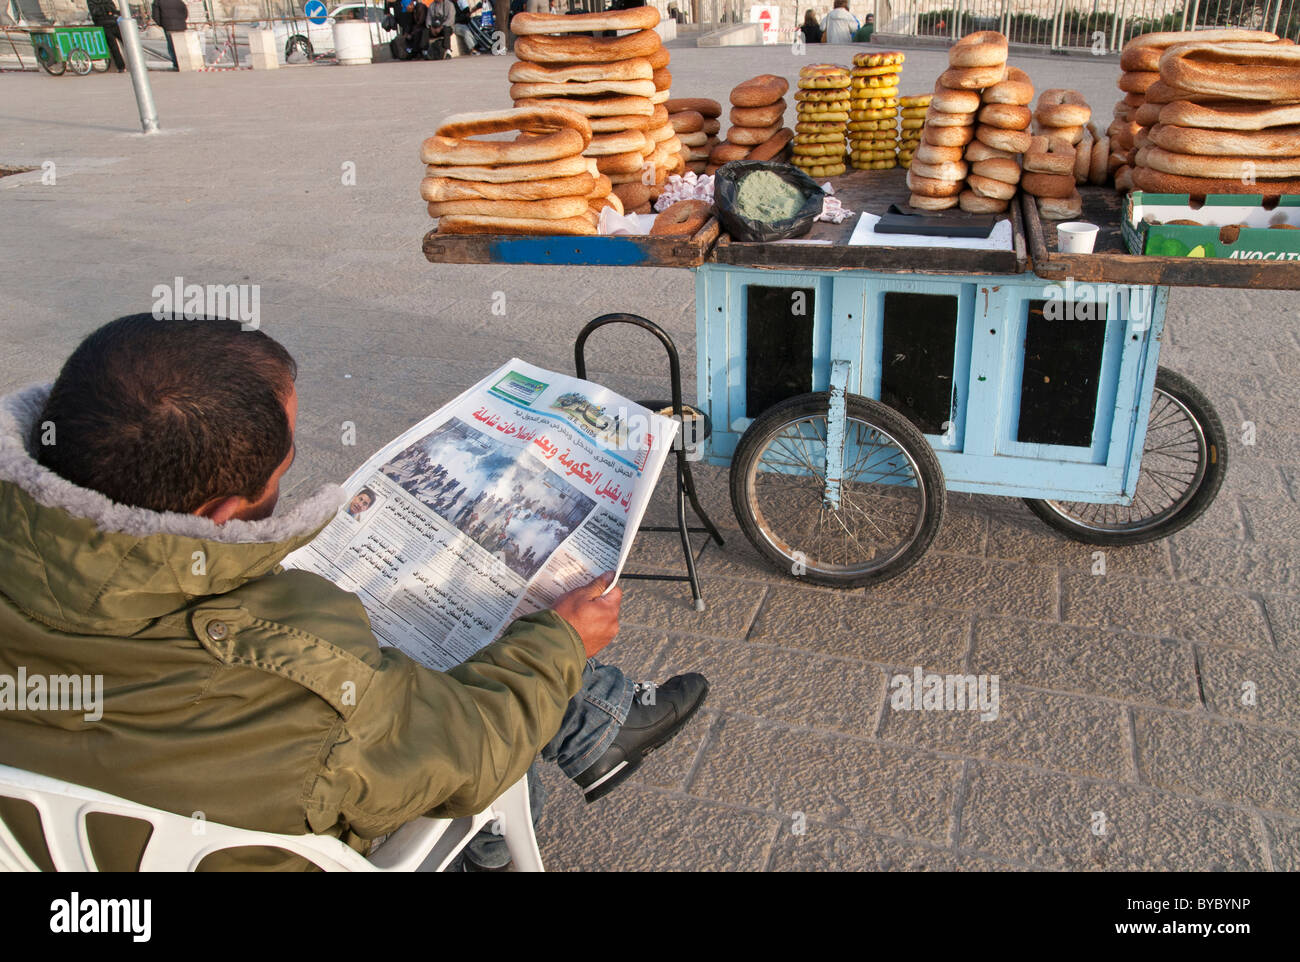 Palestinian hawker reading Al Quds newspaper with picture of protests in Egypt on front page. Jerusalem Old City - Stock Image